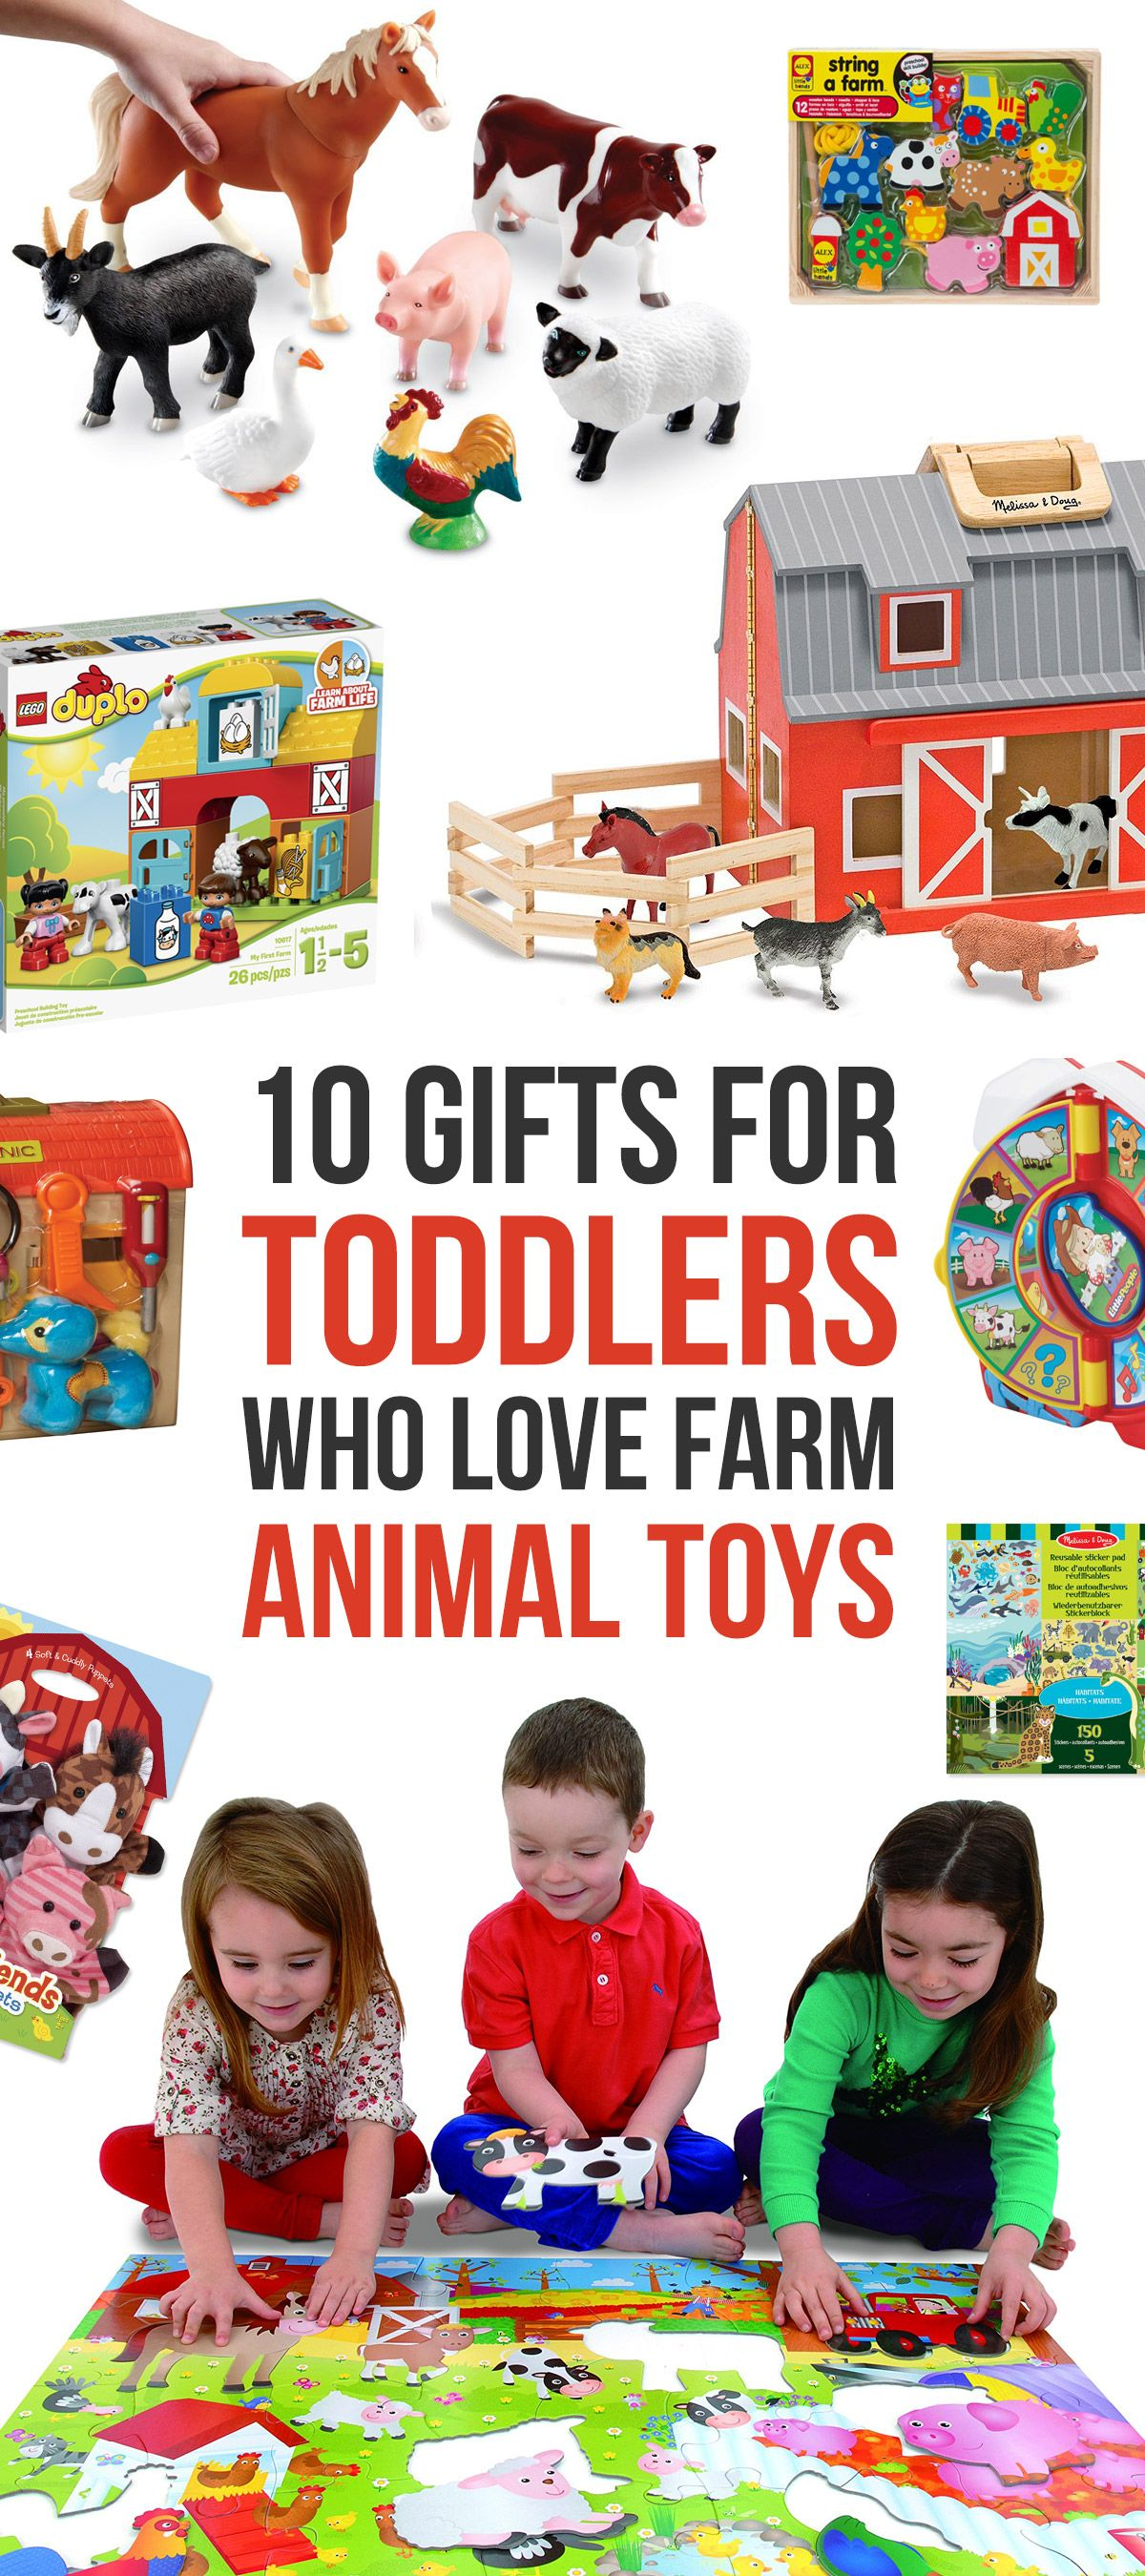 10 Best Gifts for Toddlers who Love Farm Animal Toys